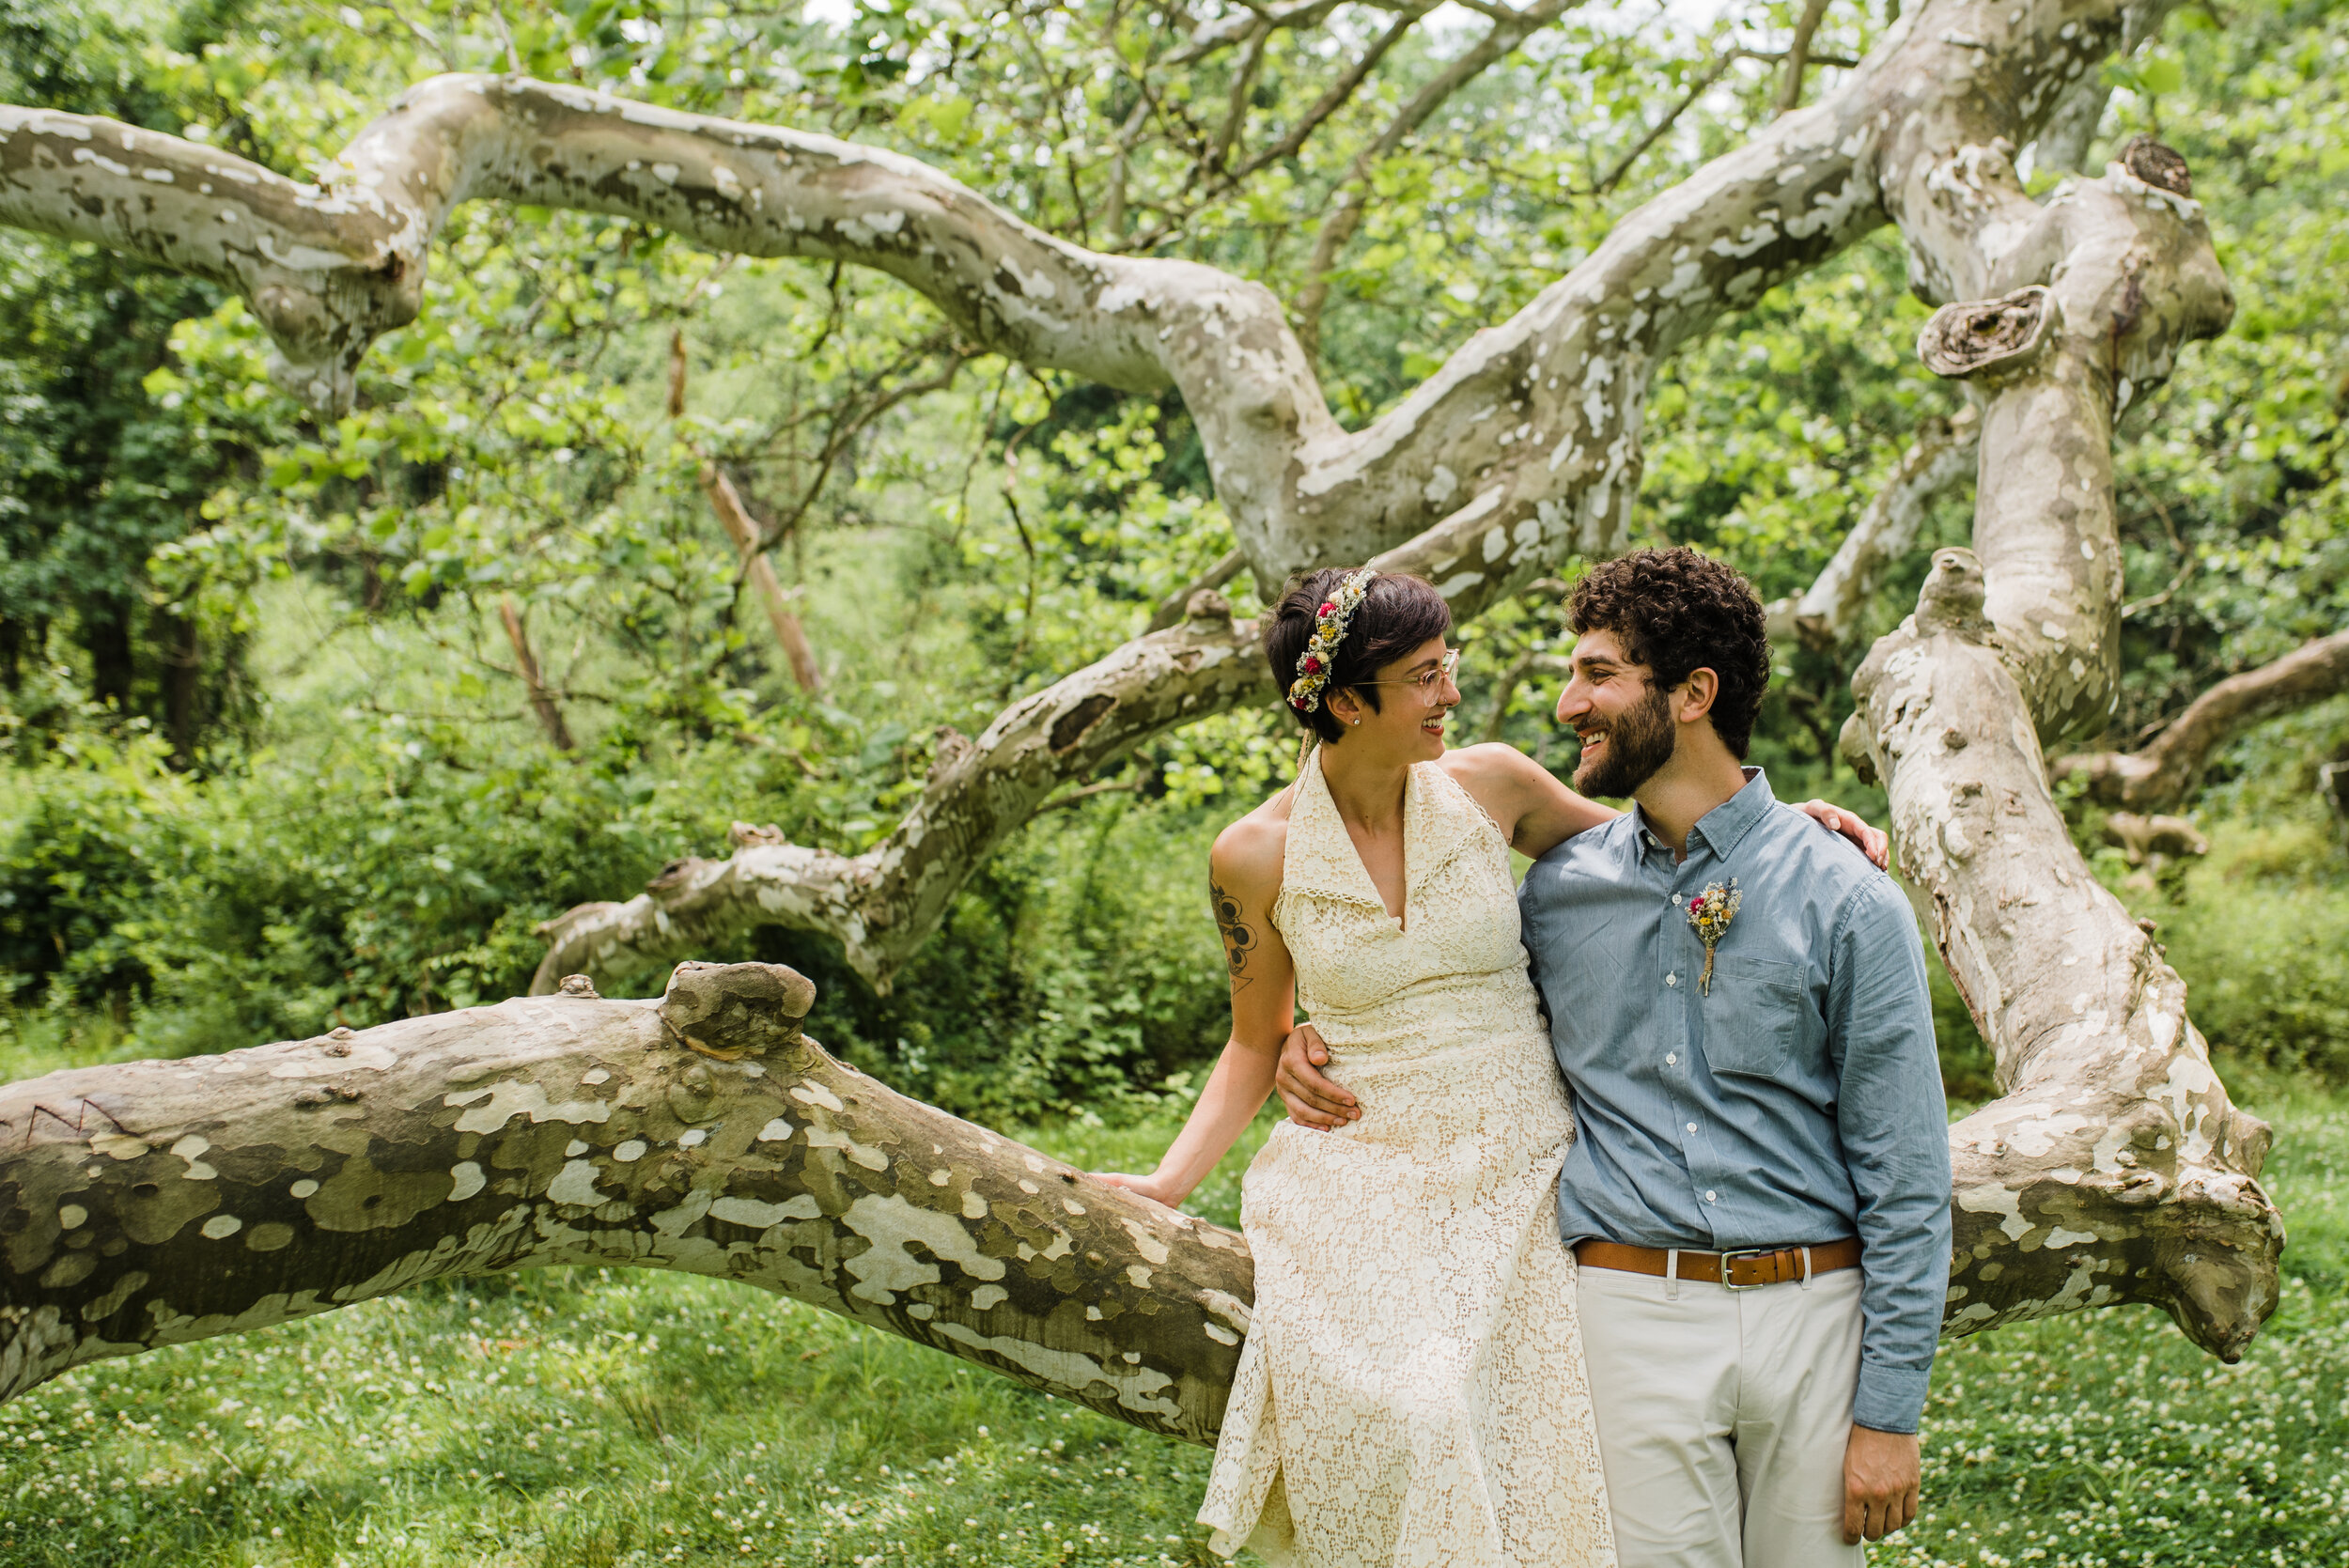 Wedding couple on a large tree. Bride is wearing a vintage inspired dress, flower crown and short hair.